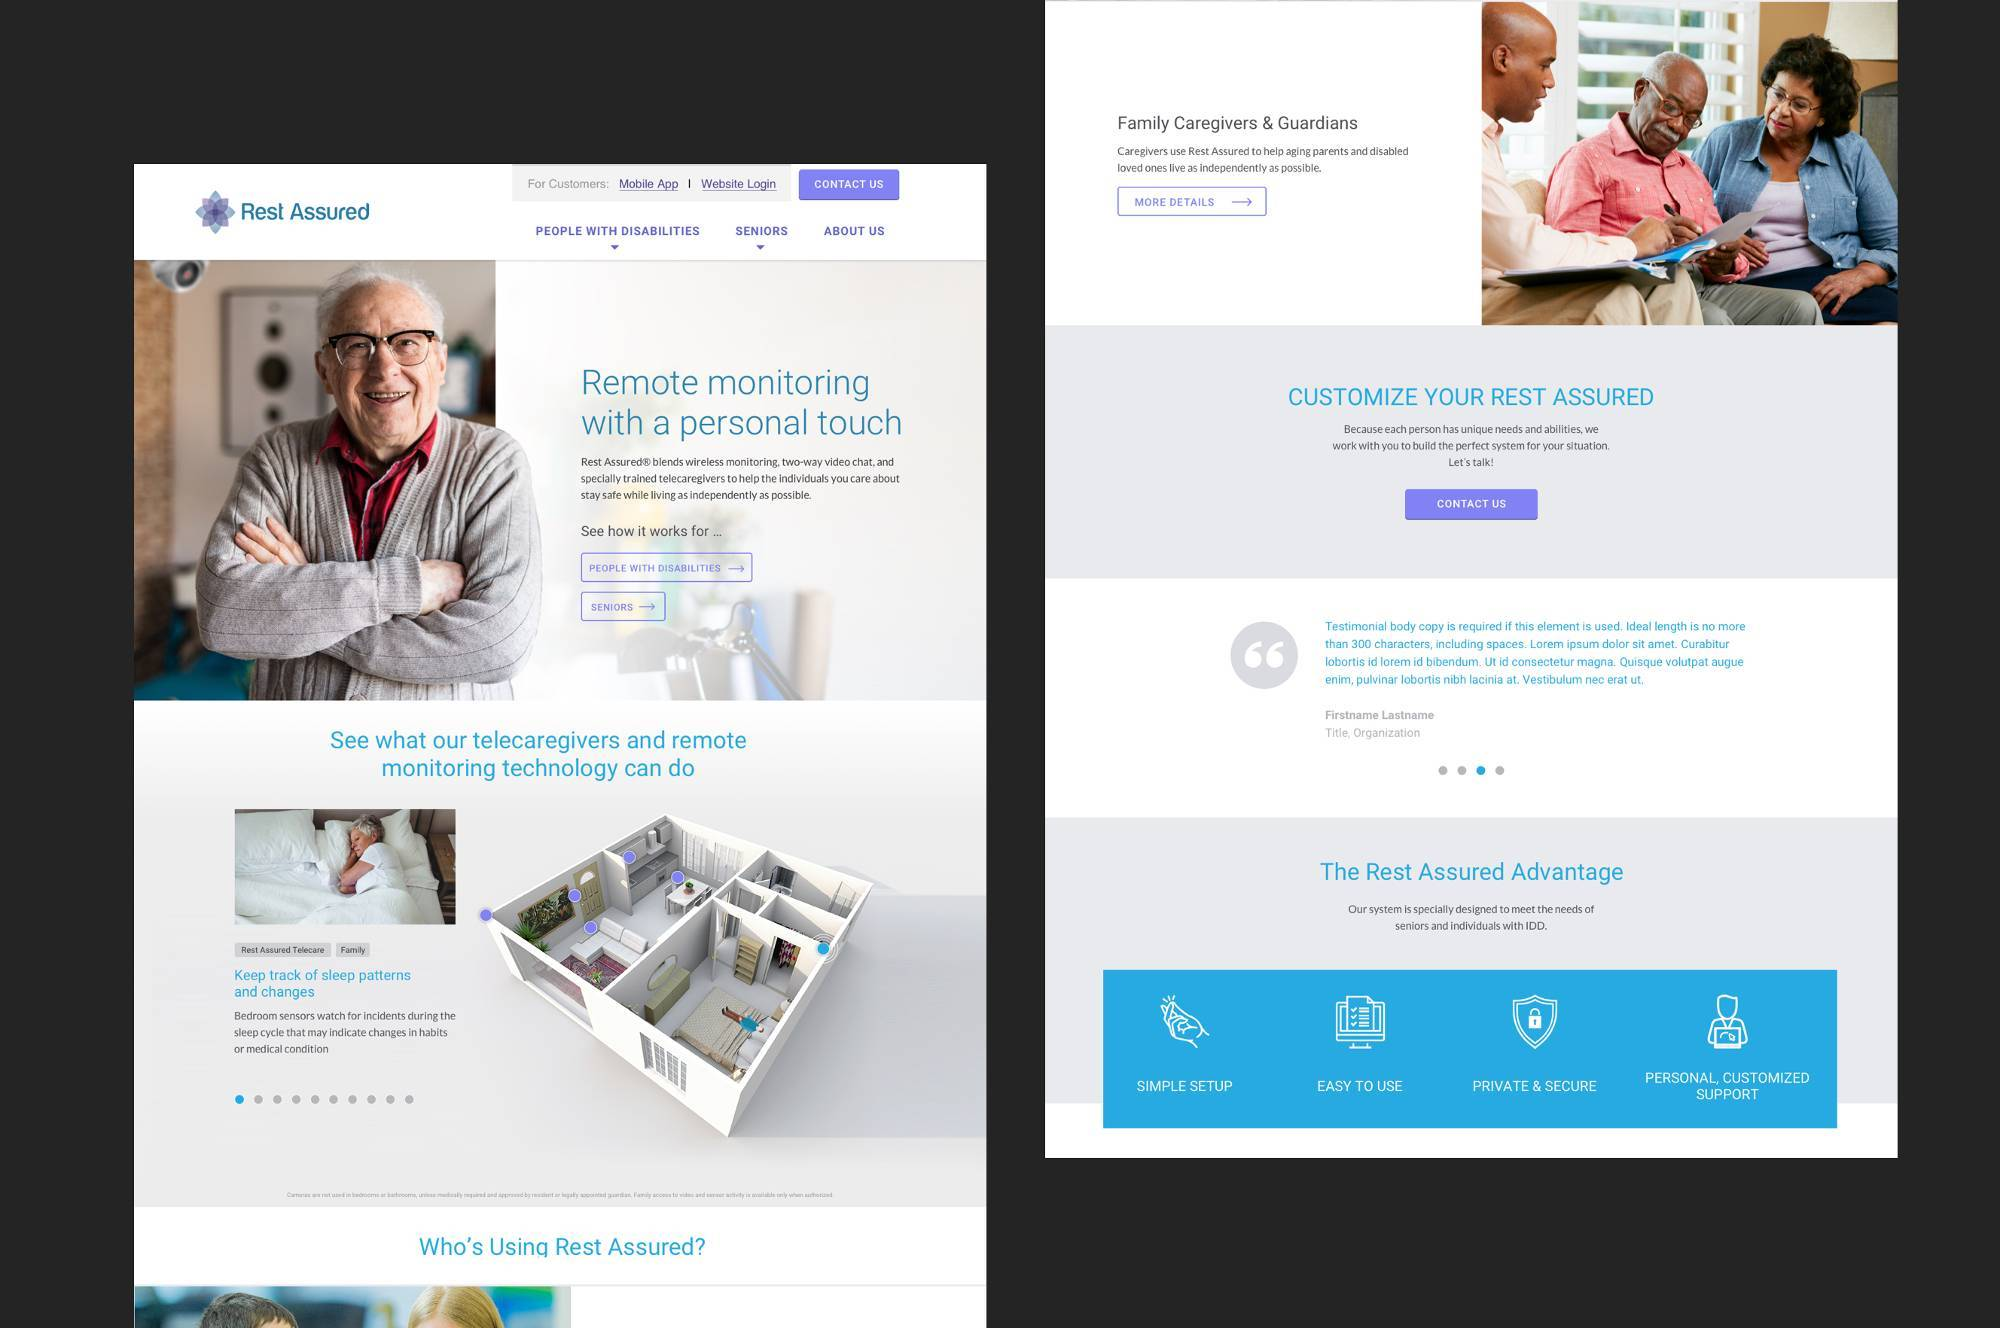 Rest Assured Remote Monitoring and Telehealth website pages